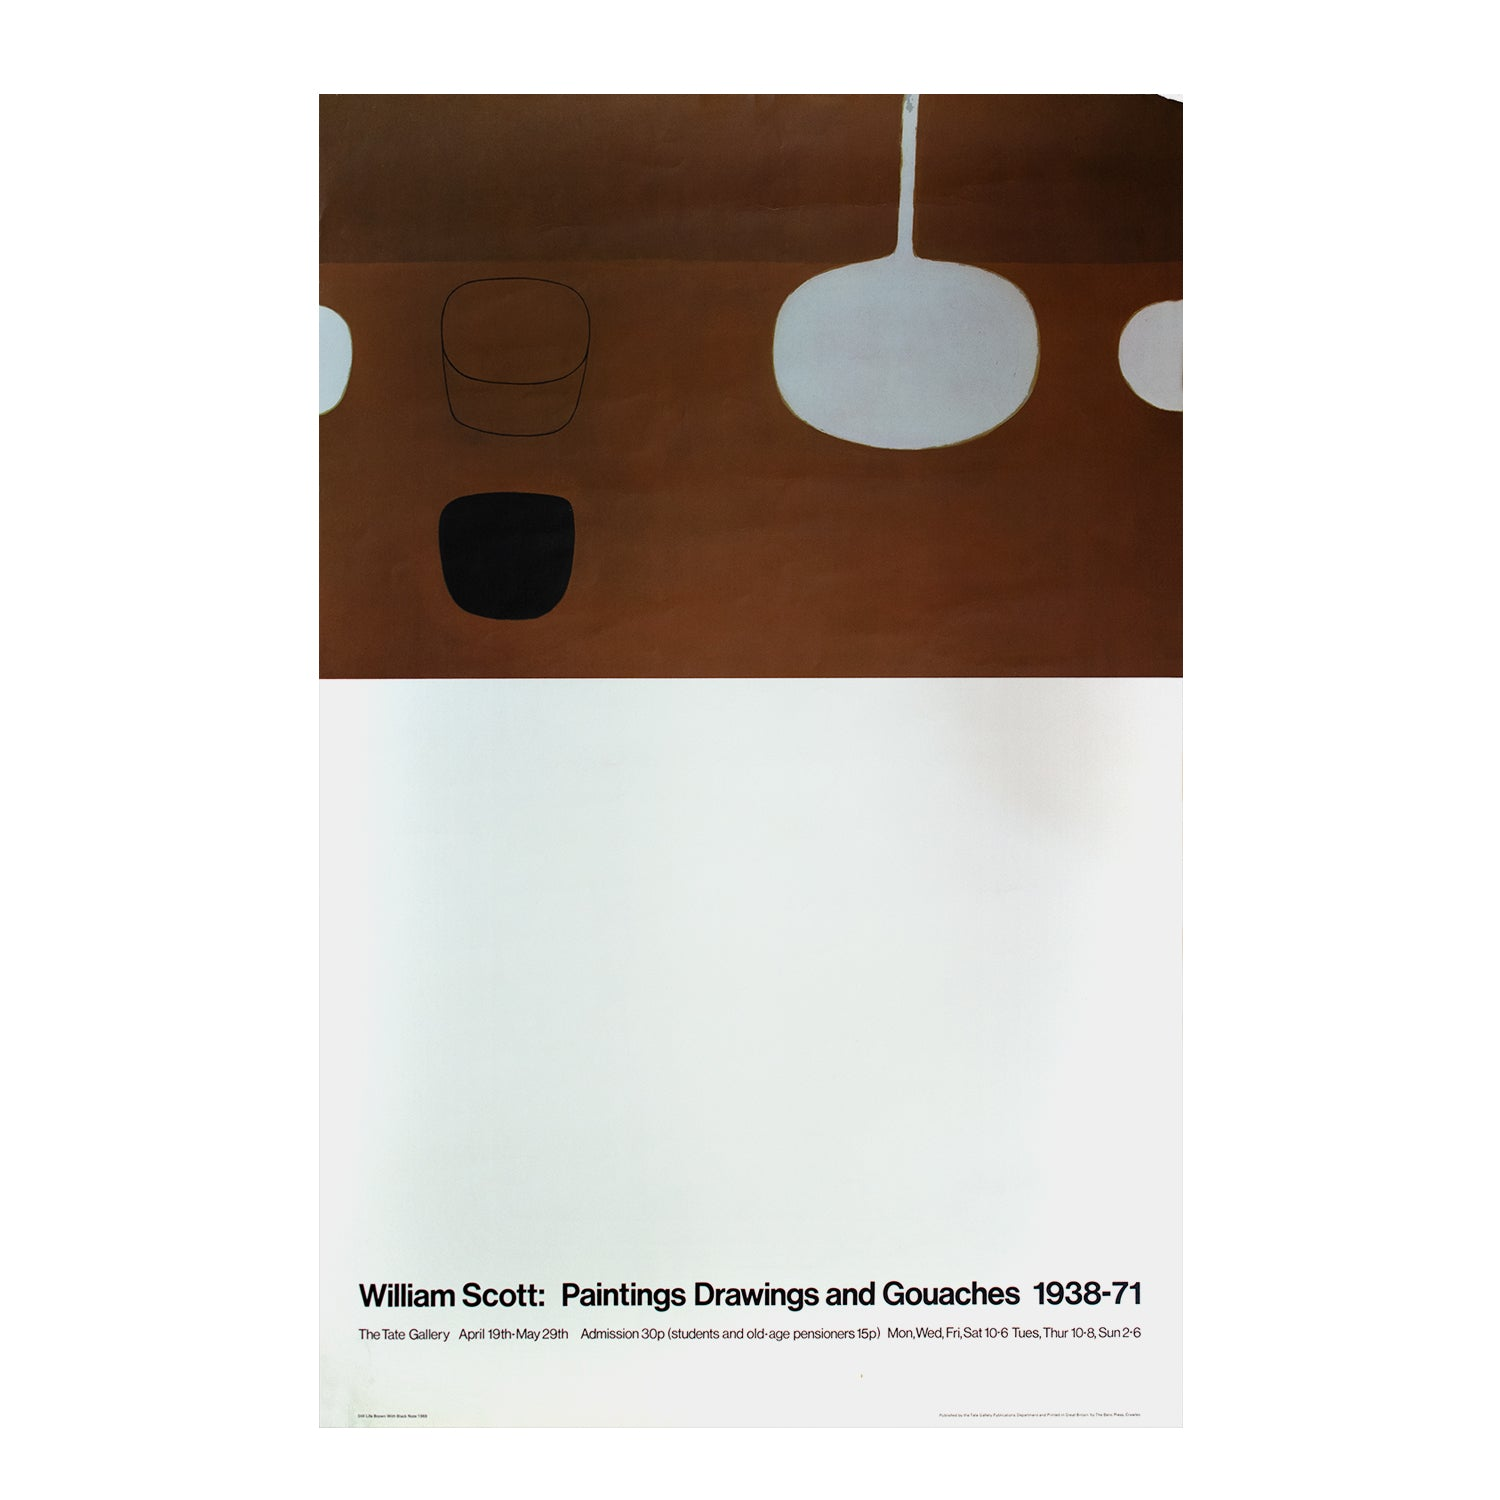 William Scott: Paintings Drawings and Gouaches, 1938-71